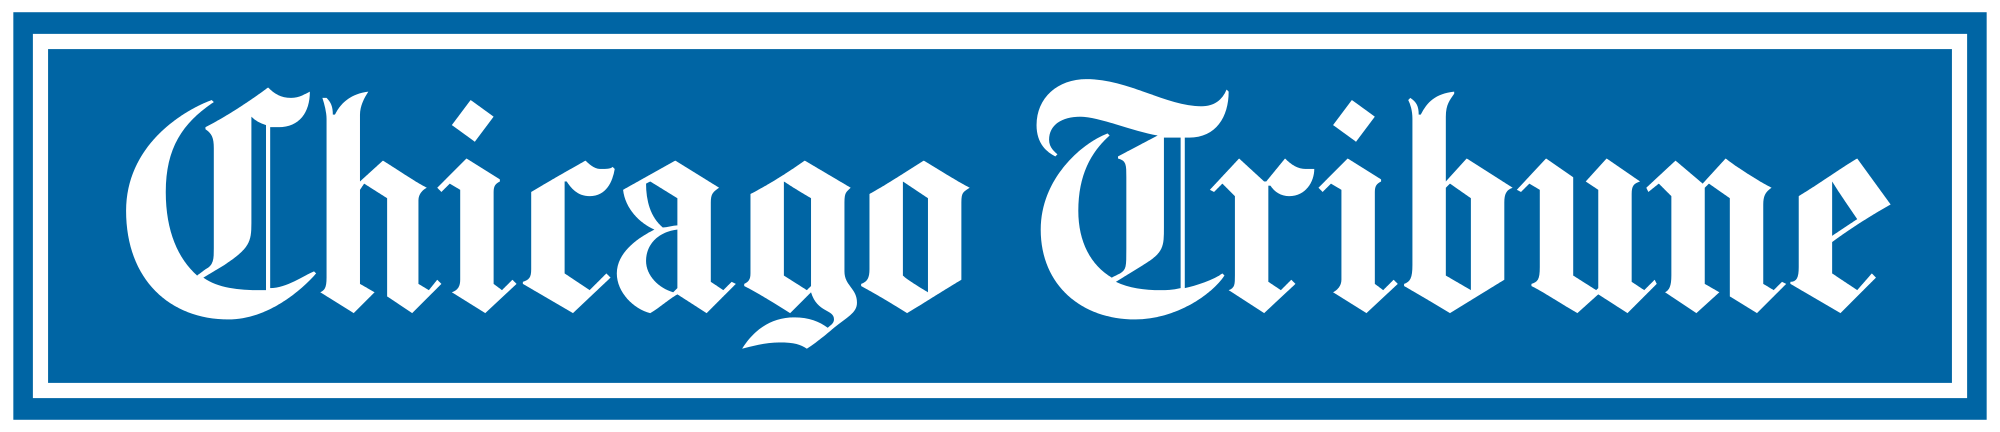 File logo svg wikimedia. Chicago tribune png clip stock